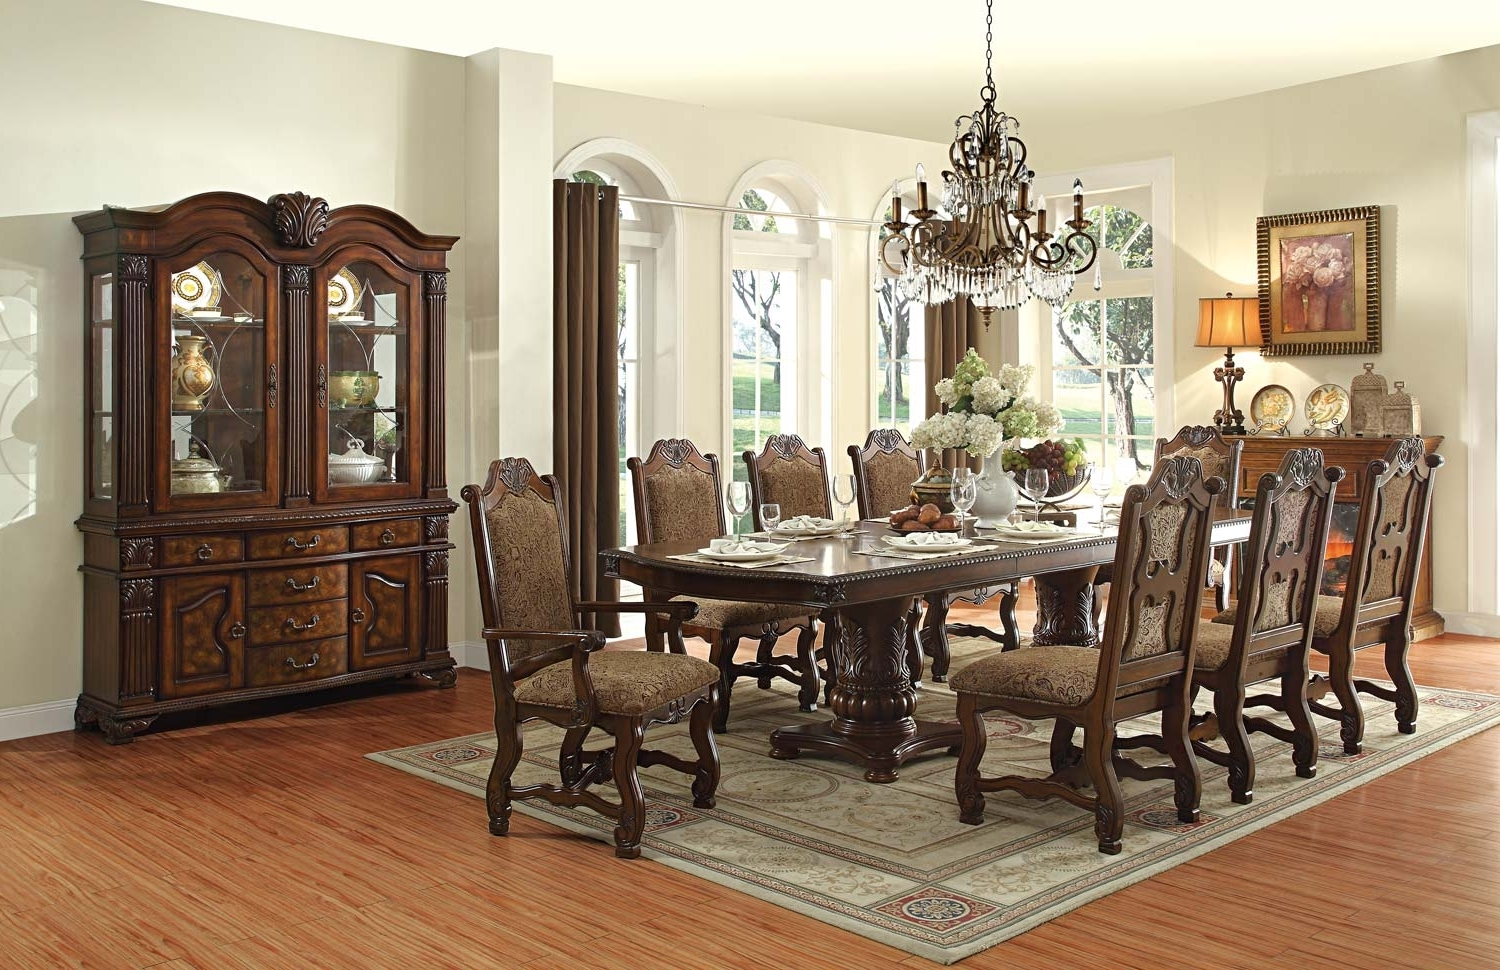 Widely Used Homelegance Thurmont Rich Cherry Leg Dining Room Set – Thurmont With Regard To 10 Seat Dining Tables And Chairs (View 24 of 25)